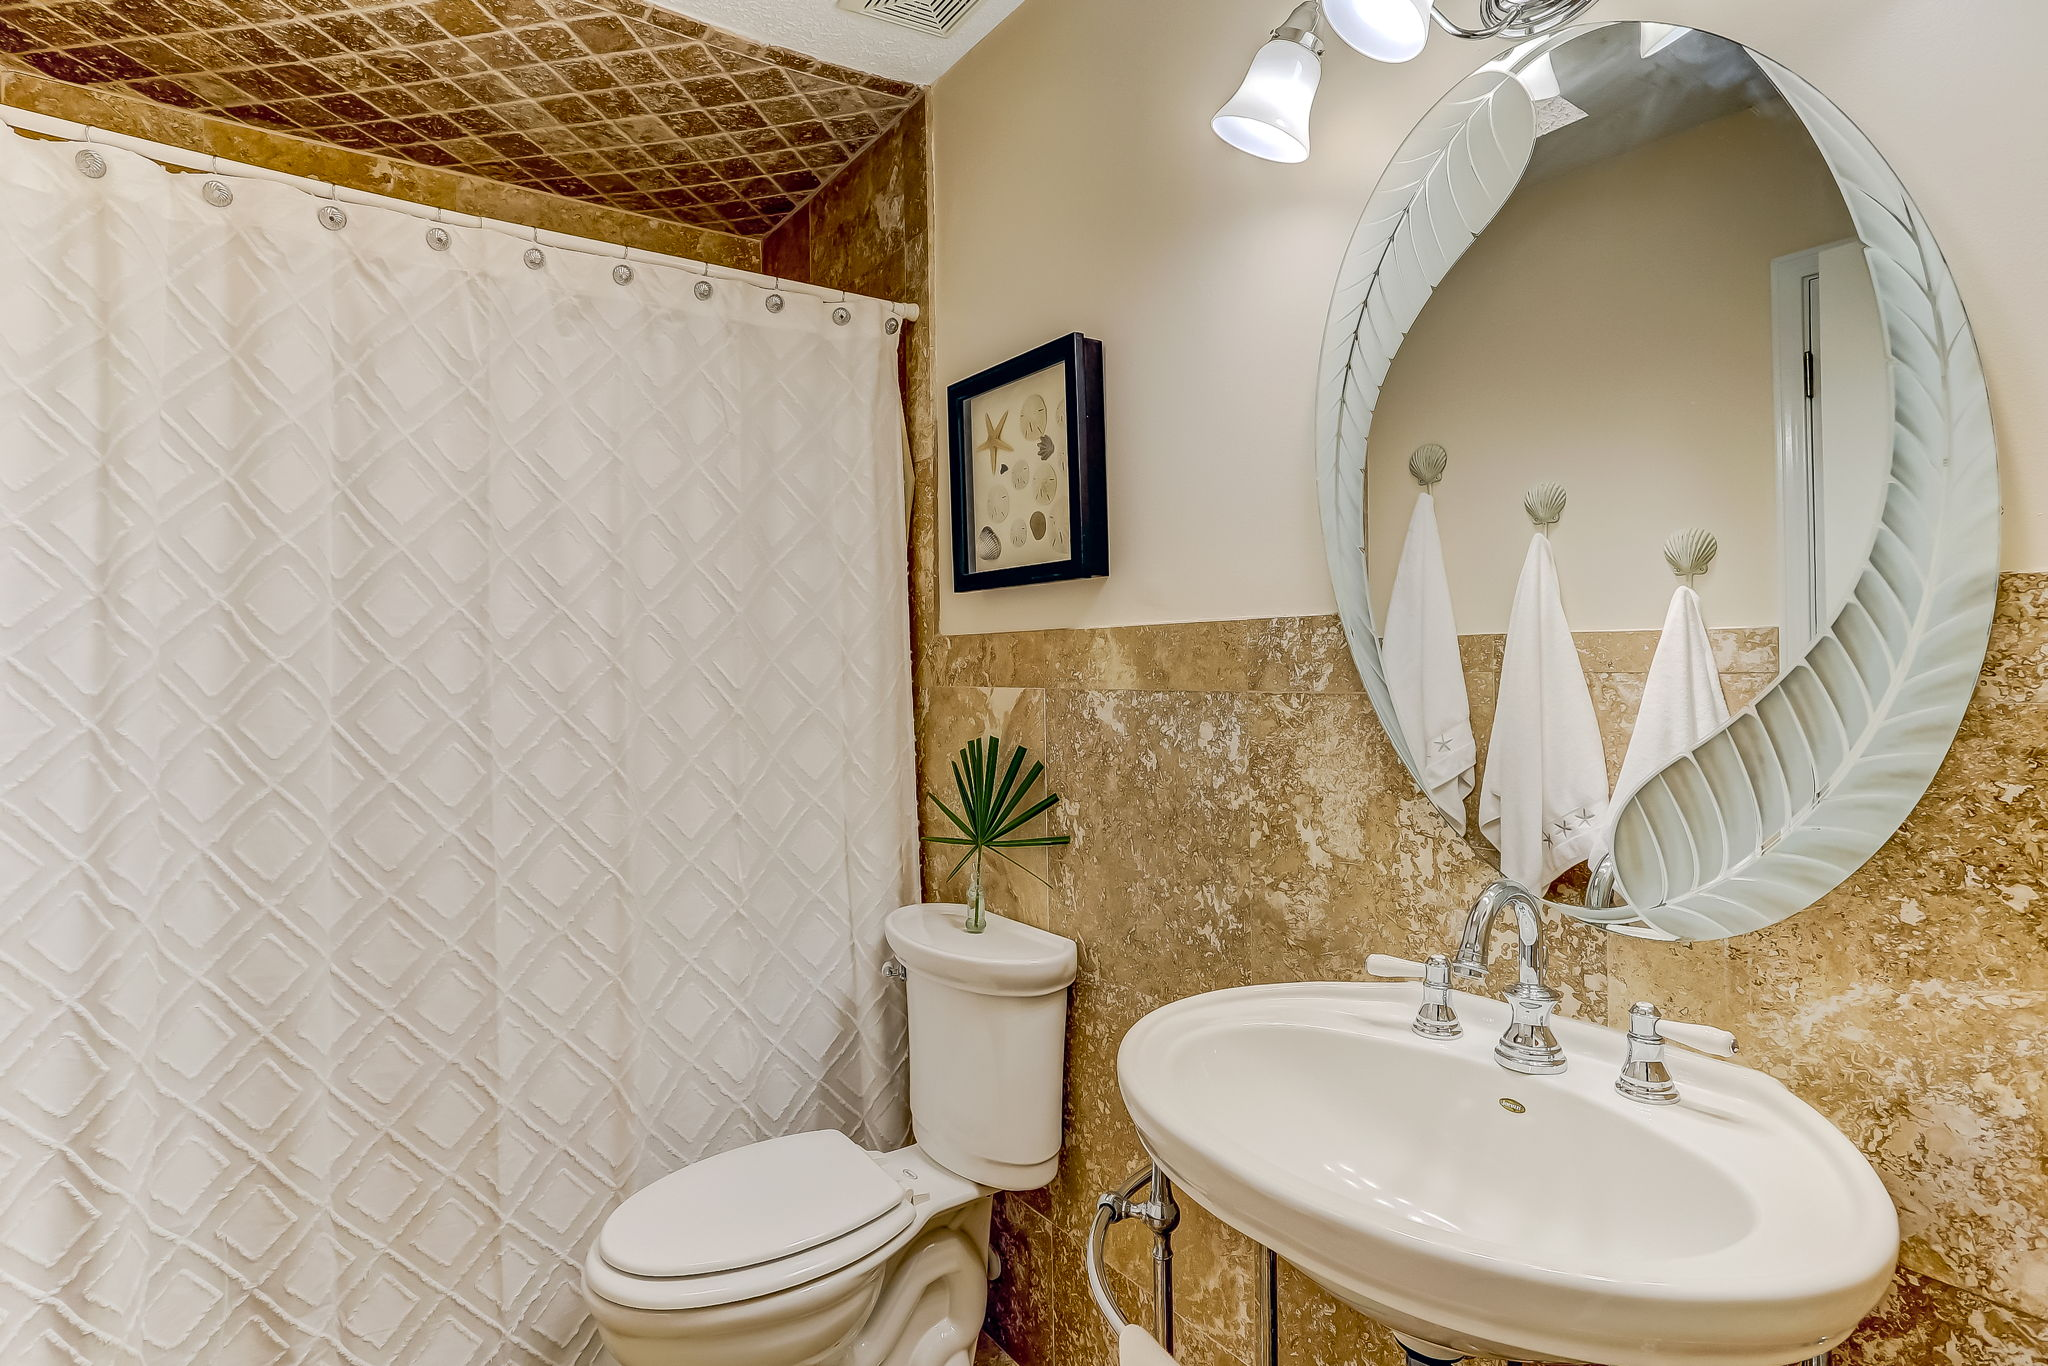 Guest bath with travertine tiled shower